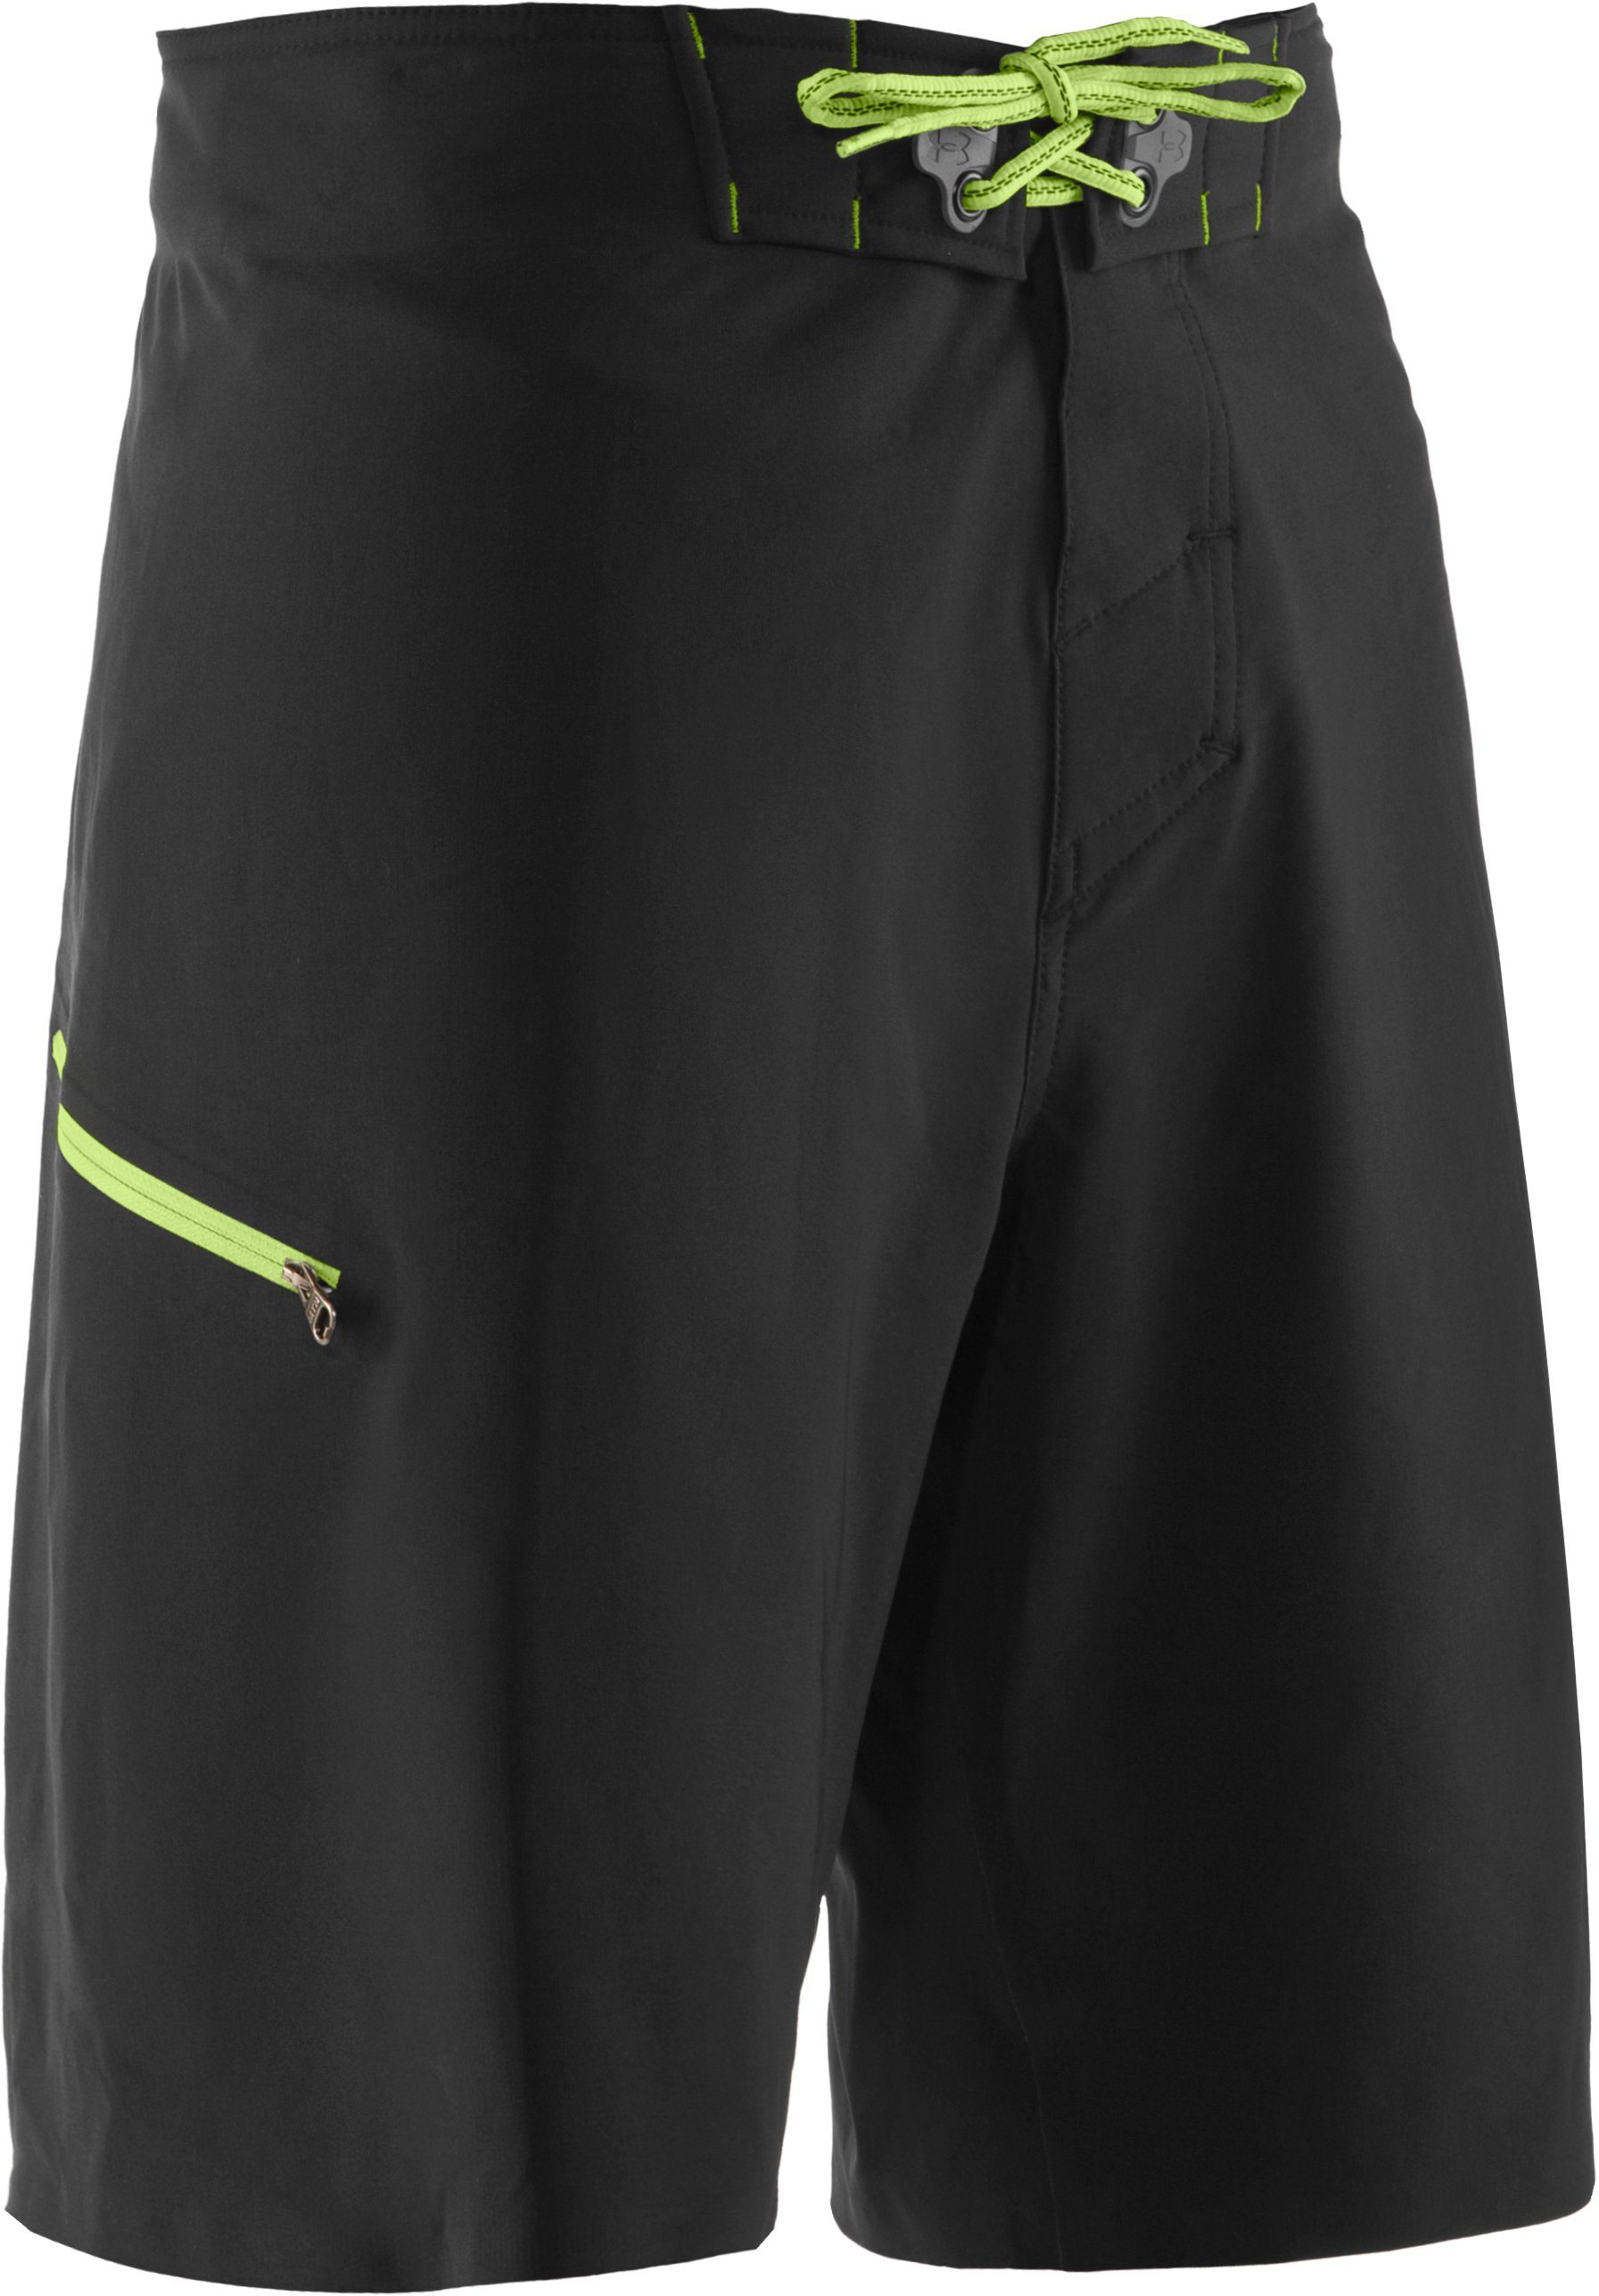 Men's UA Grovepoint Board Shorts, Black , undefined